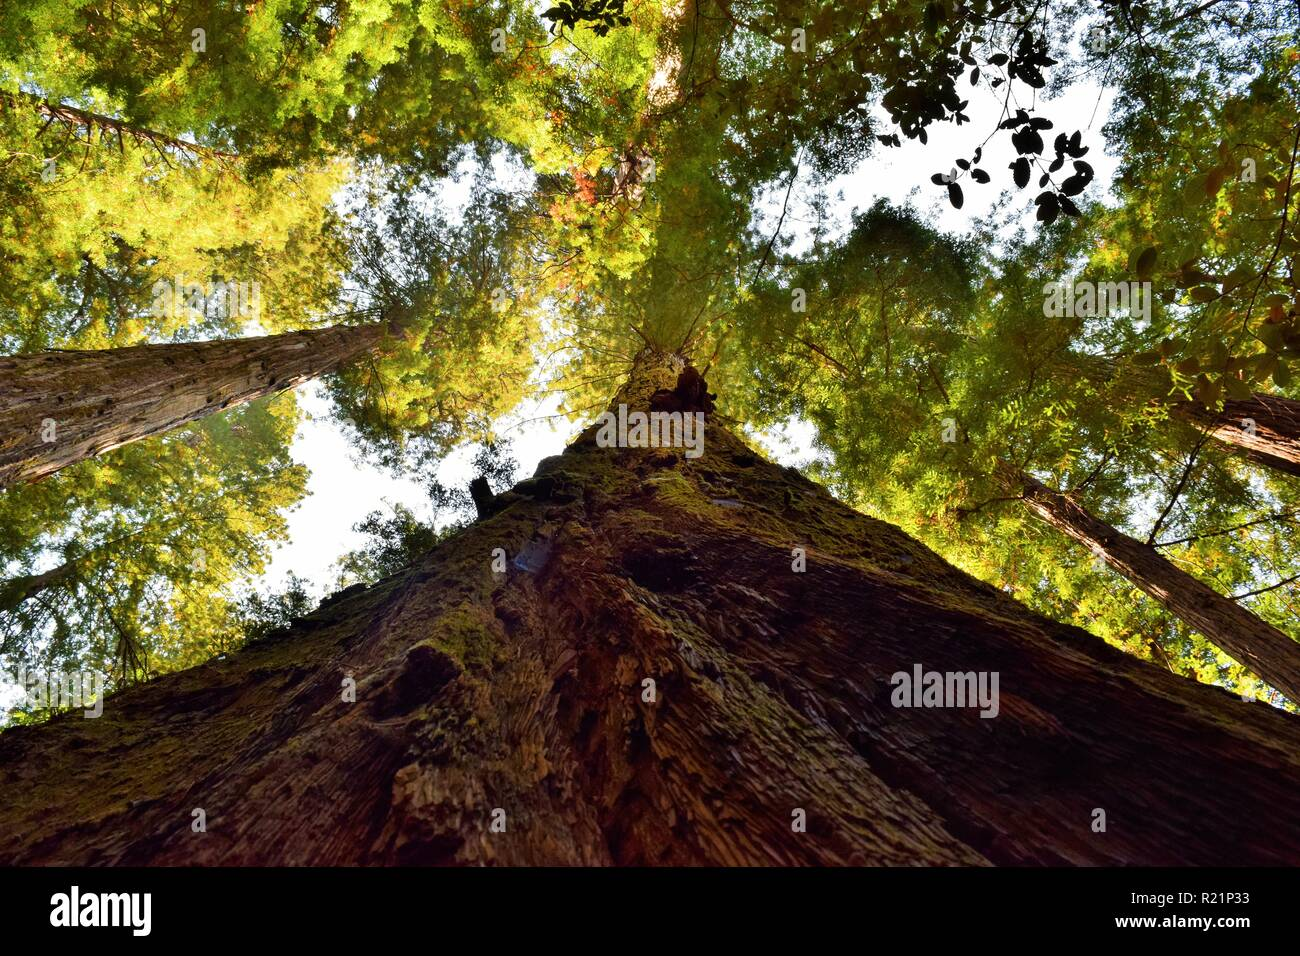 Looking up in the Redwood Forest Stock Photo